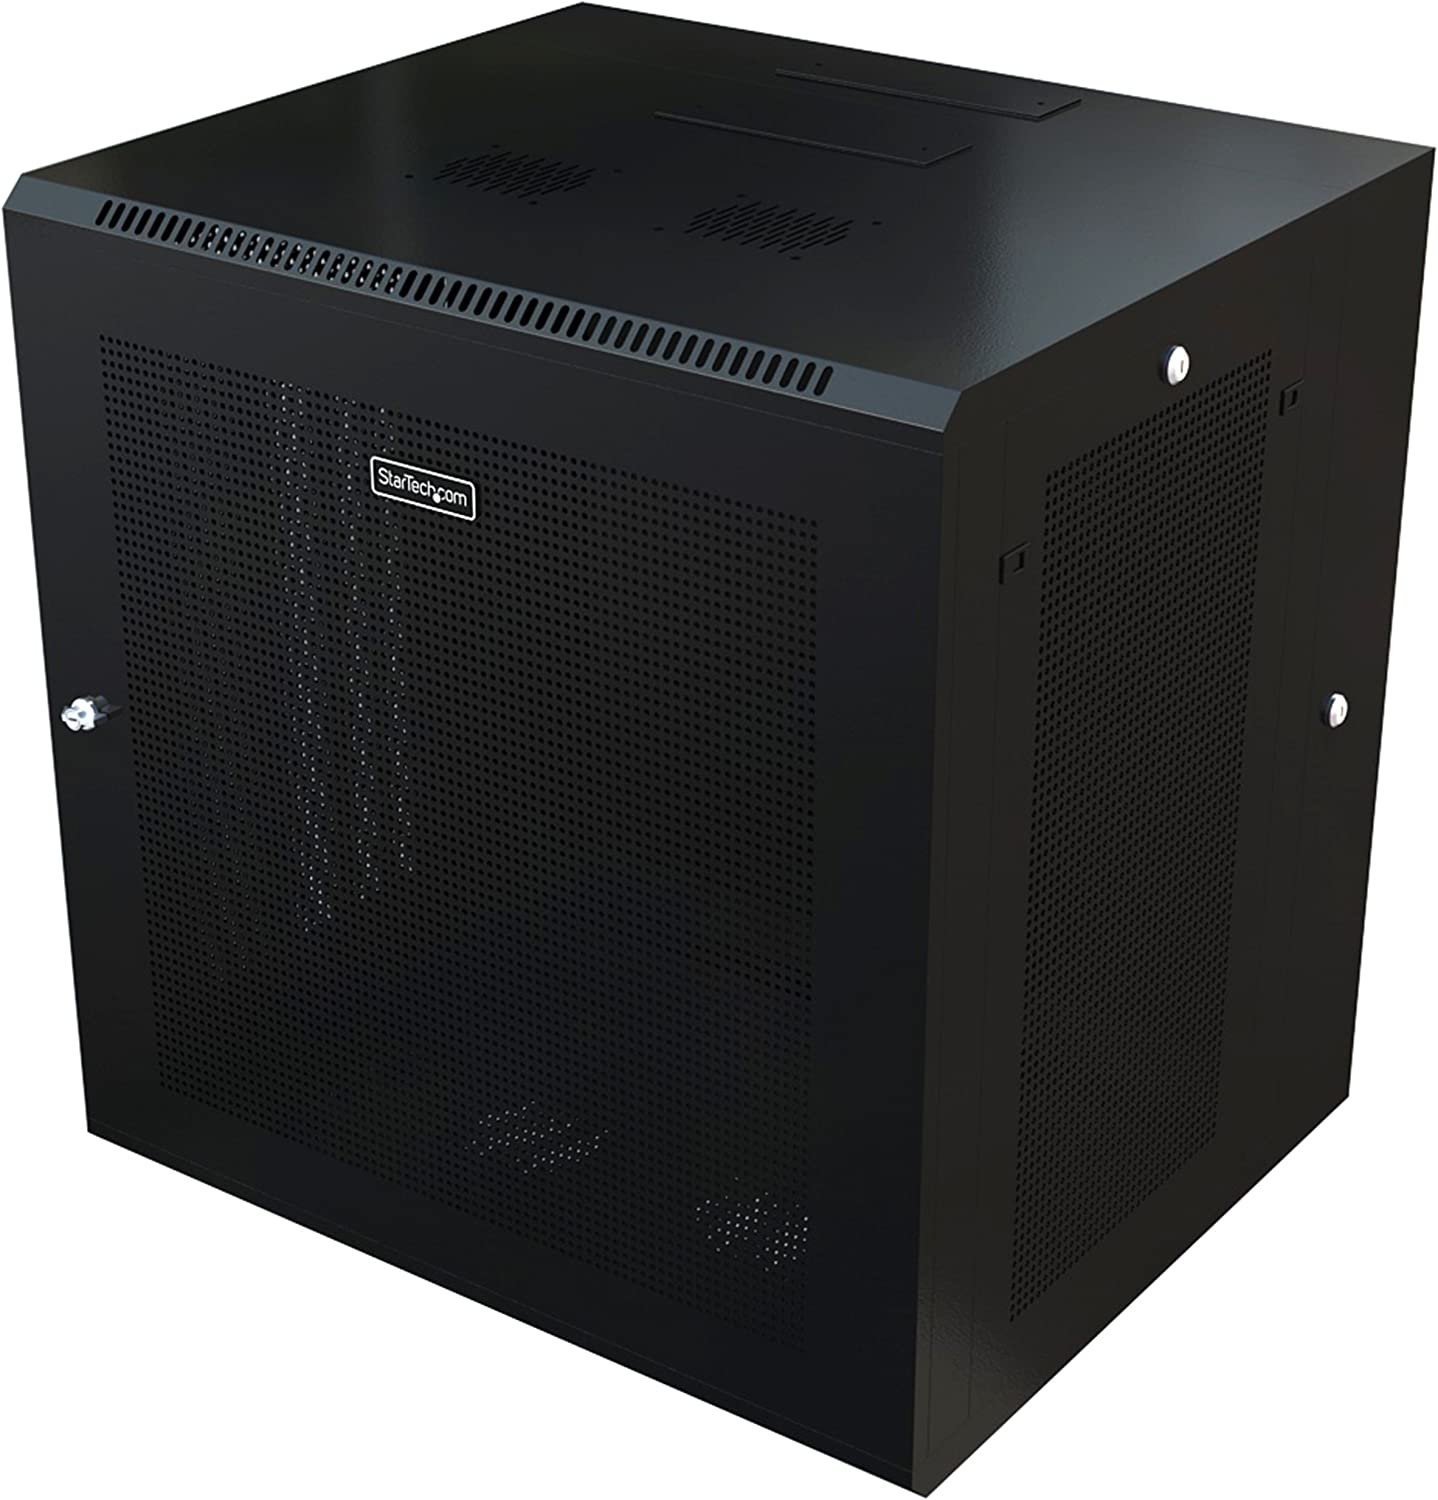 "StarTech.com 12U 19"" Wall Mount Network Cabinet - 20"" Deep 4 Post Hinged Locking IT Computer Equipment Enclosure w/Shelf - Flexible Vented Switch Depth Data Rack Cisco 3850, 2960 Series (RK1224WALHM)"